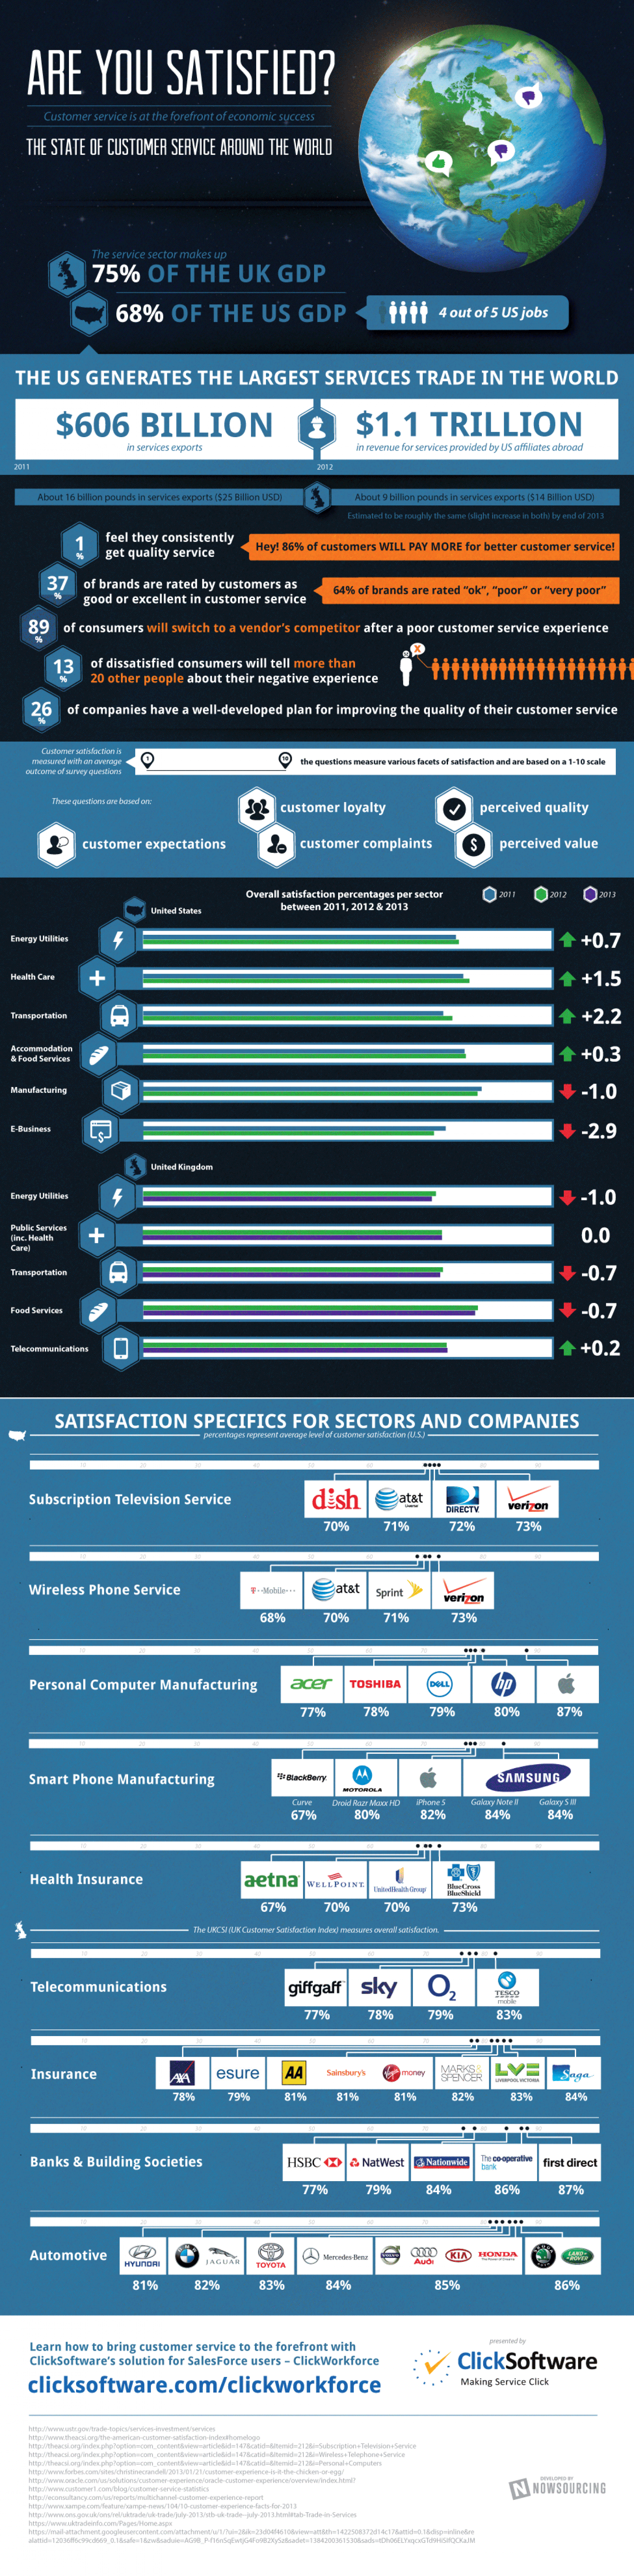 The State of Customer Service Around the World Infographic